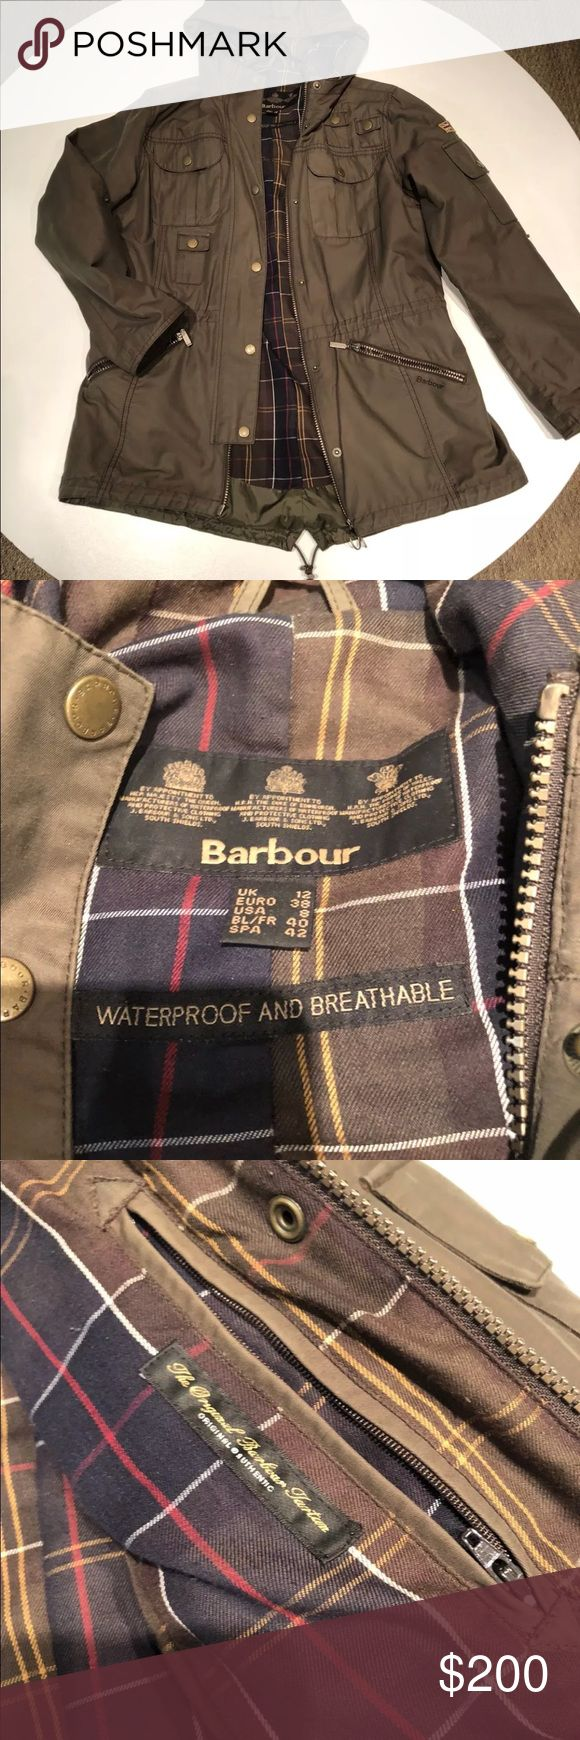 Womens Barbour Winter Twill Force Parka US 8 UK 12 Women's Barbour coat in awesome condition! Literally no flaws throughout the whole jacket. Very stylish and practical. Measurements are available above! 100% authentic! Barbour Jackets & Coats